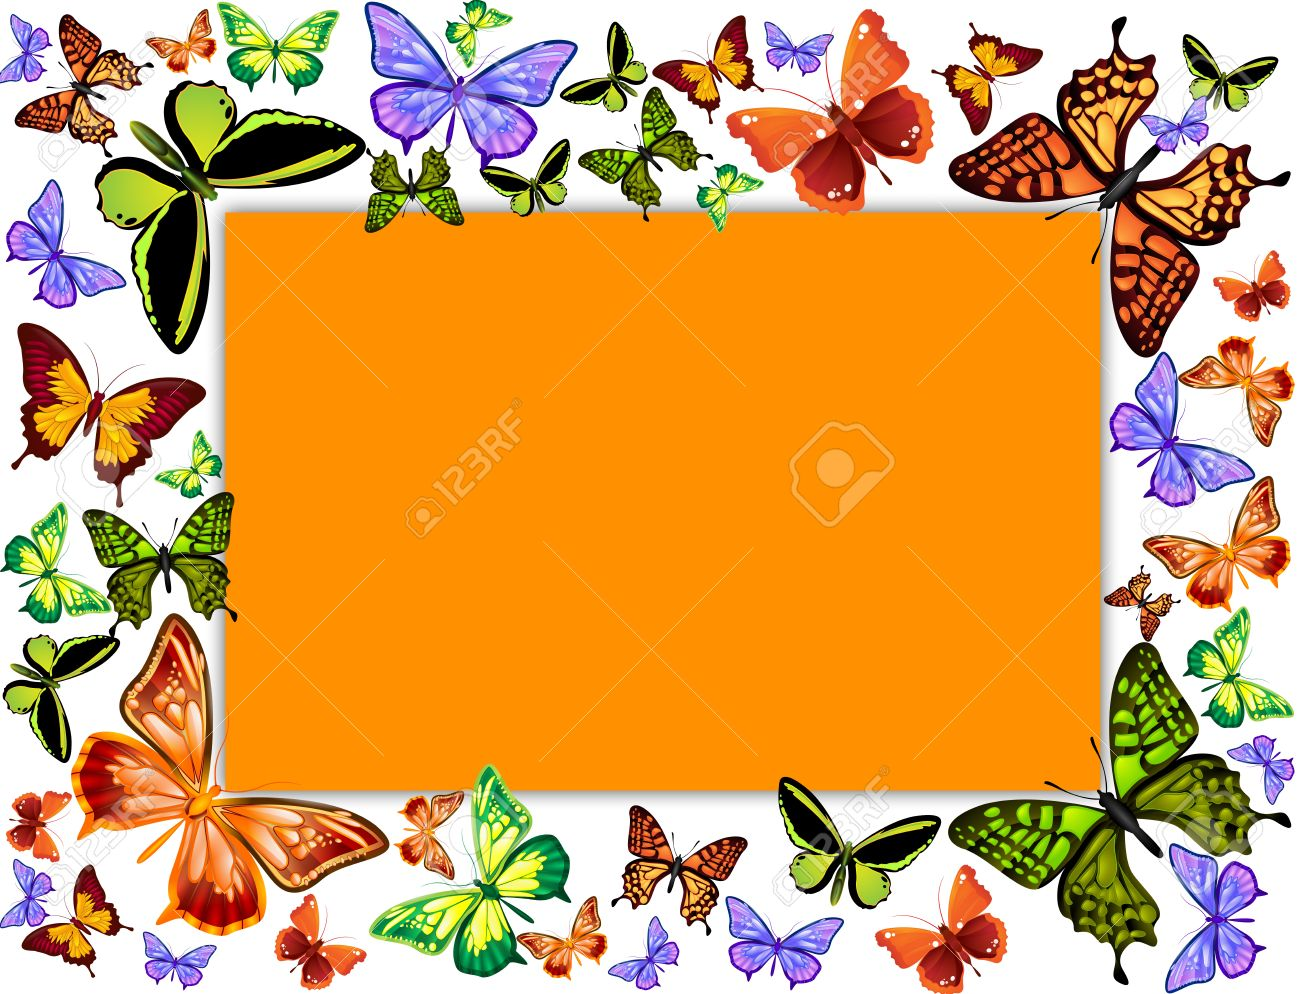 butterflies frame illustration stock illustration 11295494